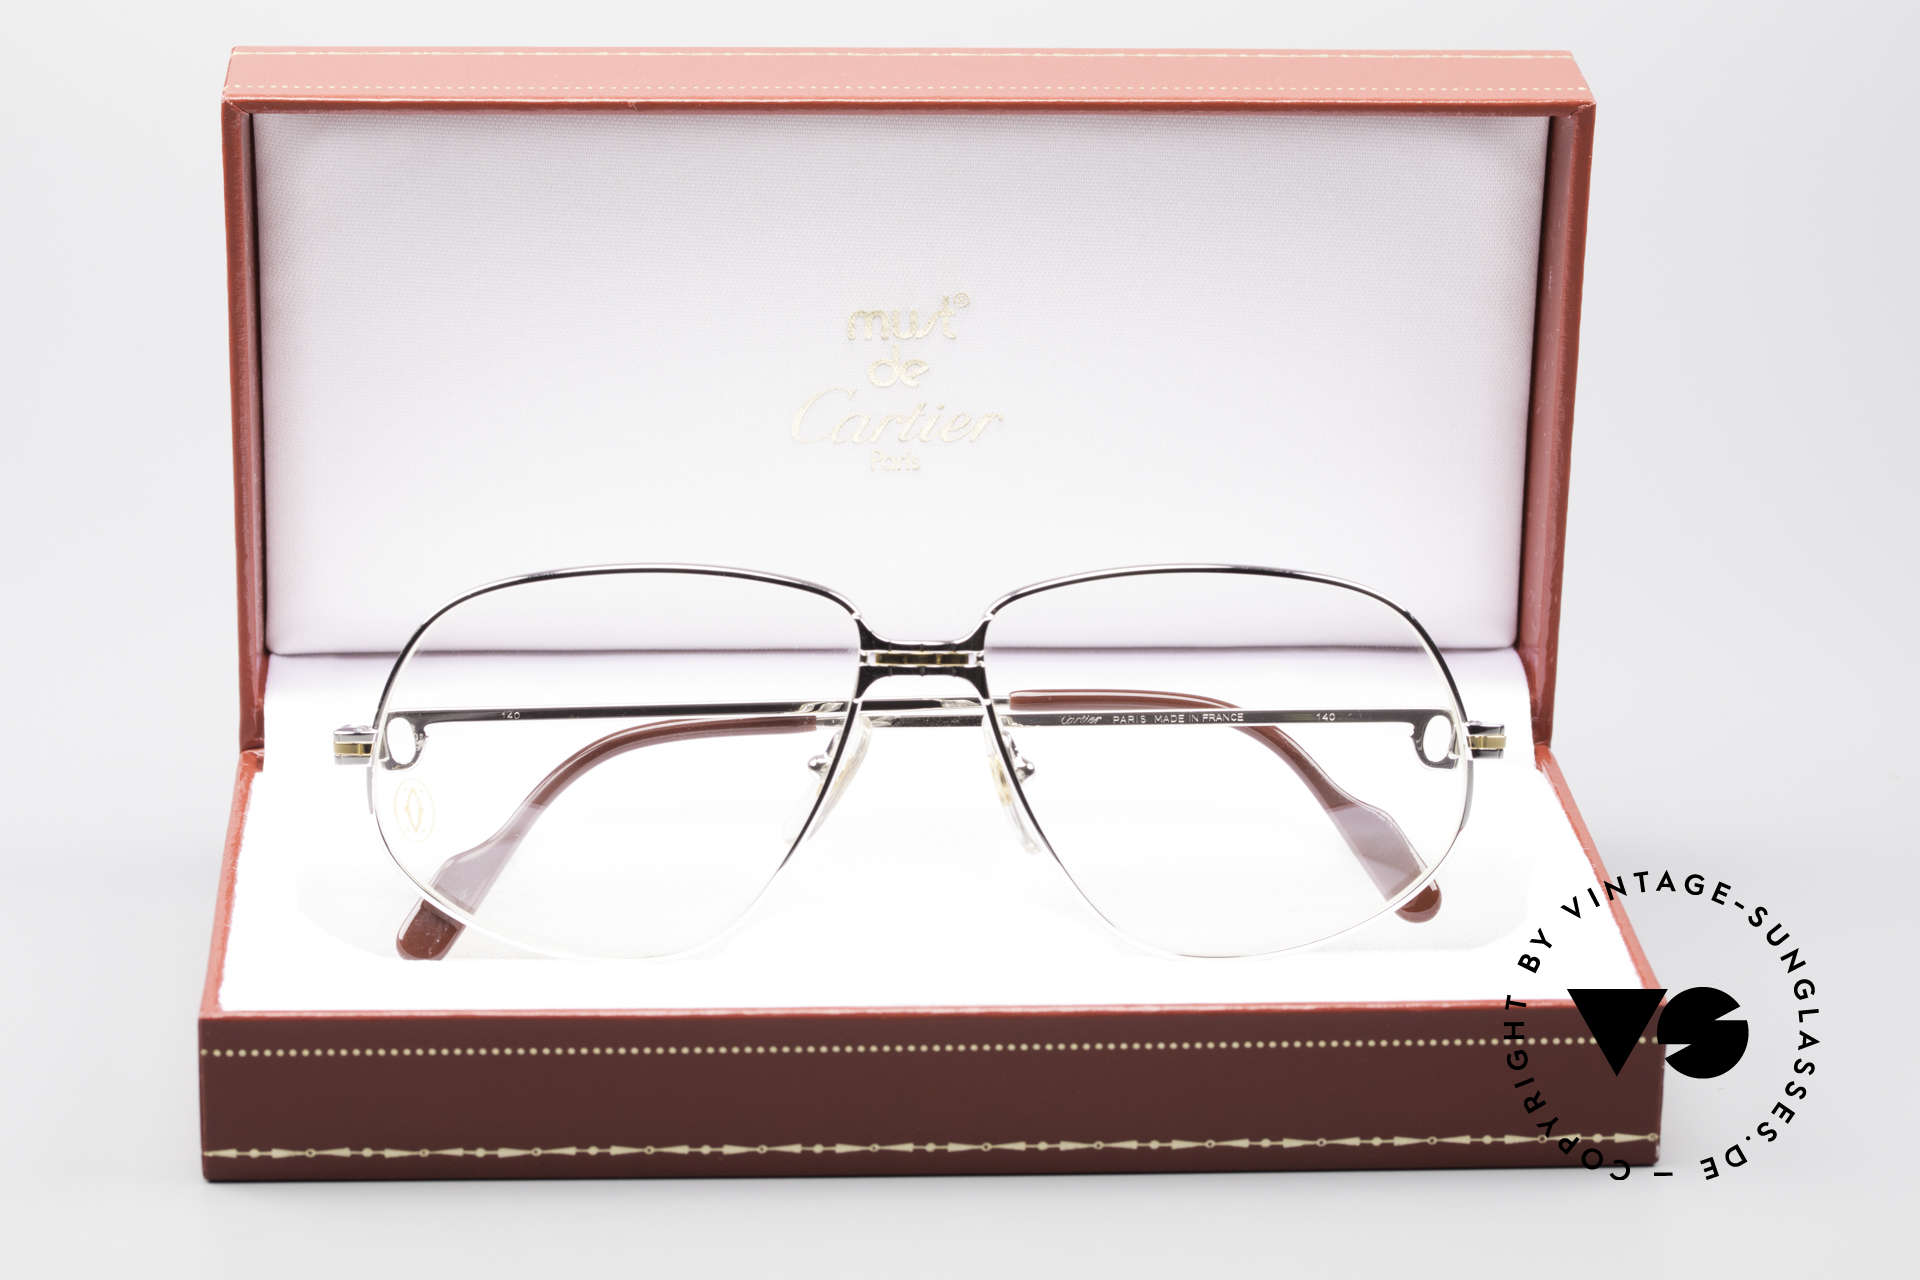 Cartier Panthere G.M. - L Rare Platinum Finish Frame, precious luxury eyeglass-frame in LARGE size 59-14, 140, Made for Men